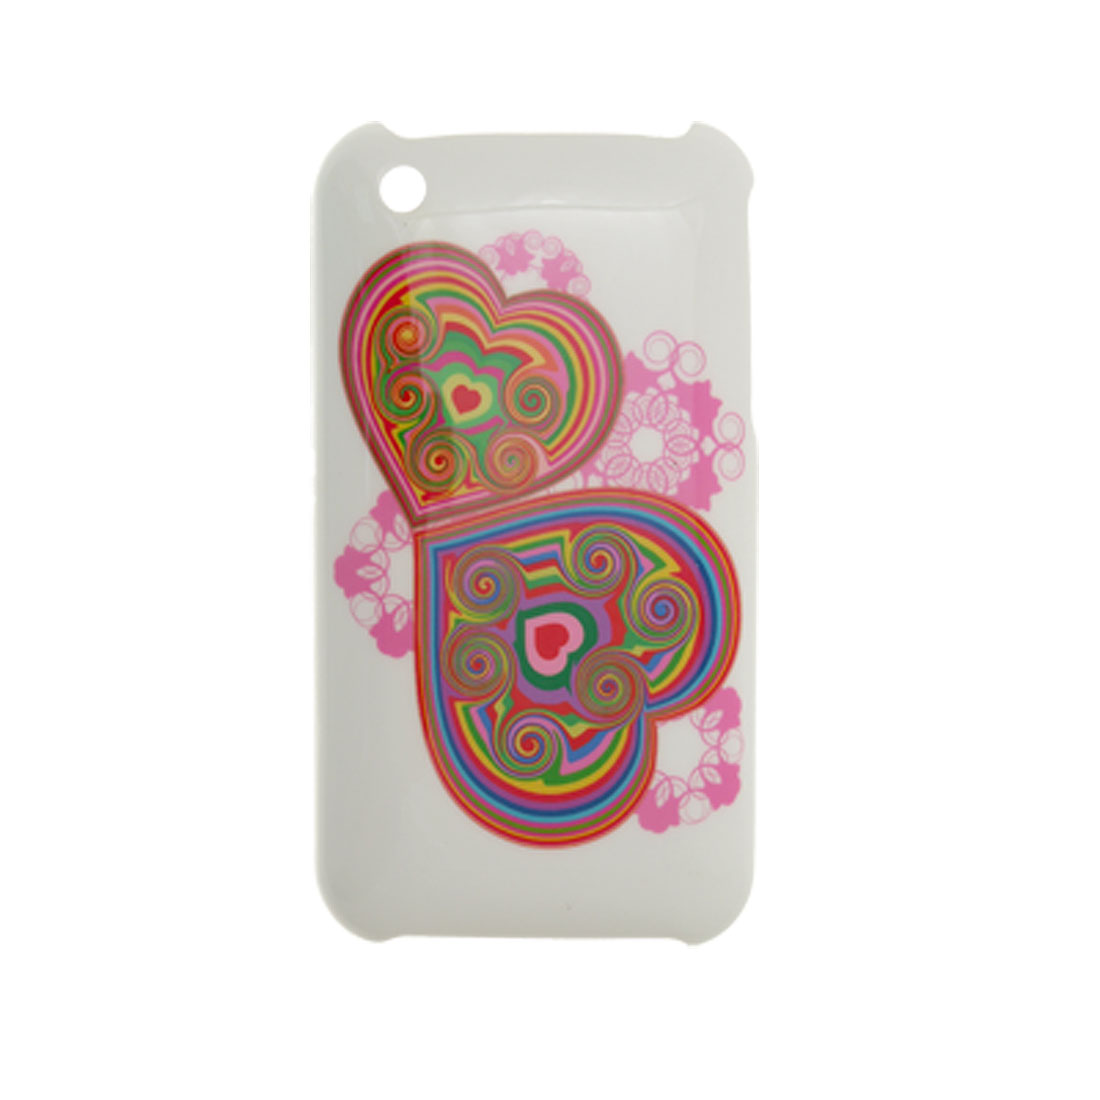 Hearts White Plastic Case Protector for iPhone 3G 3GS